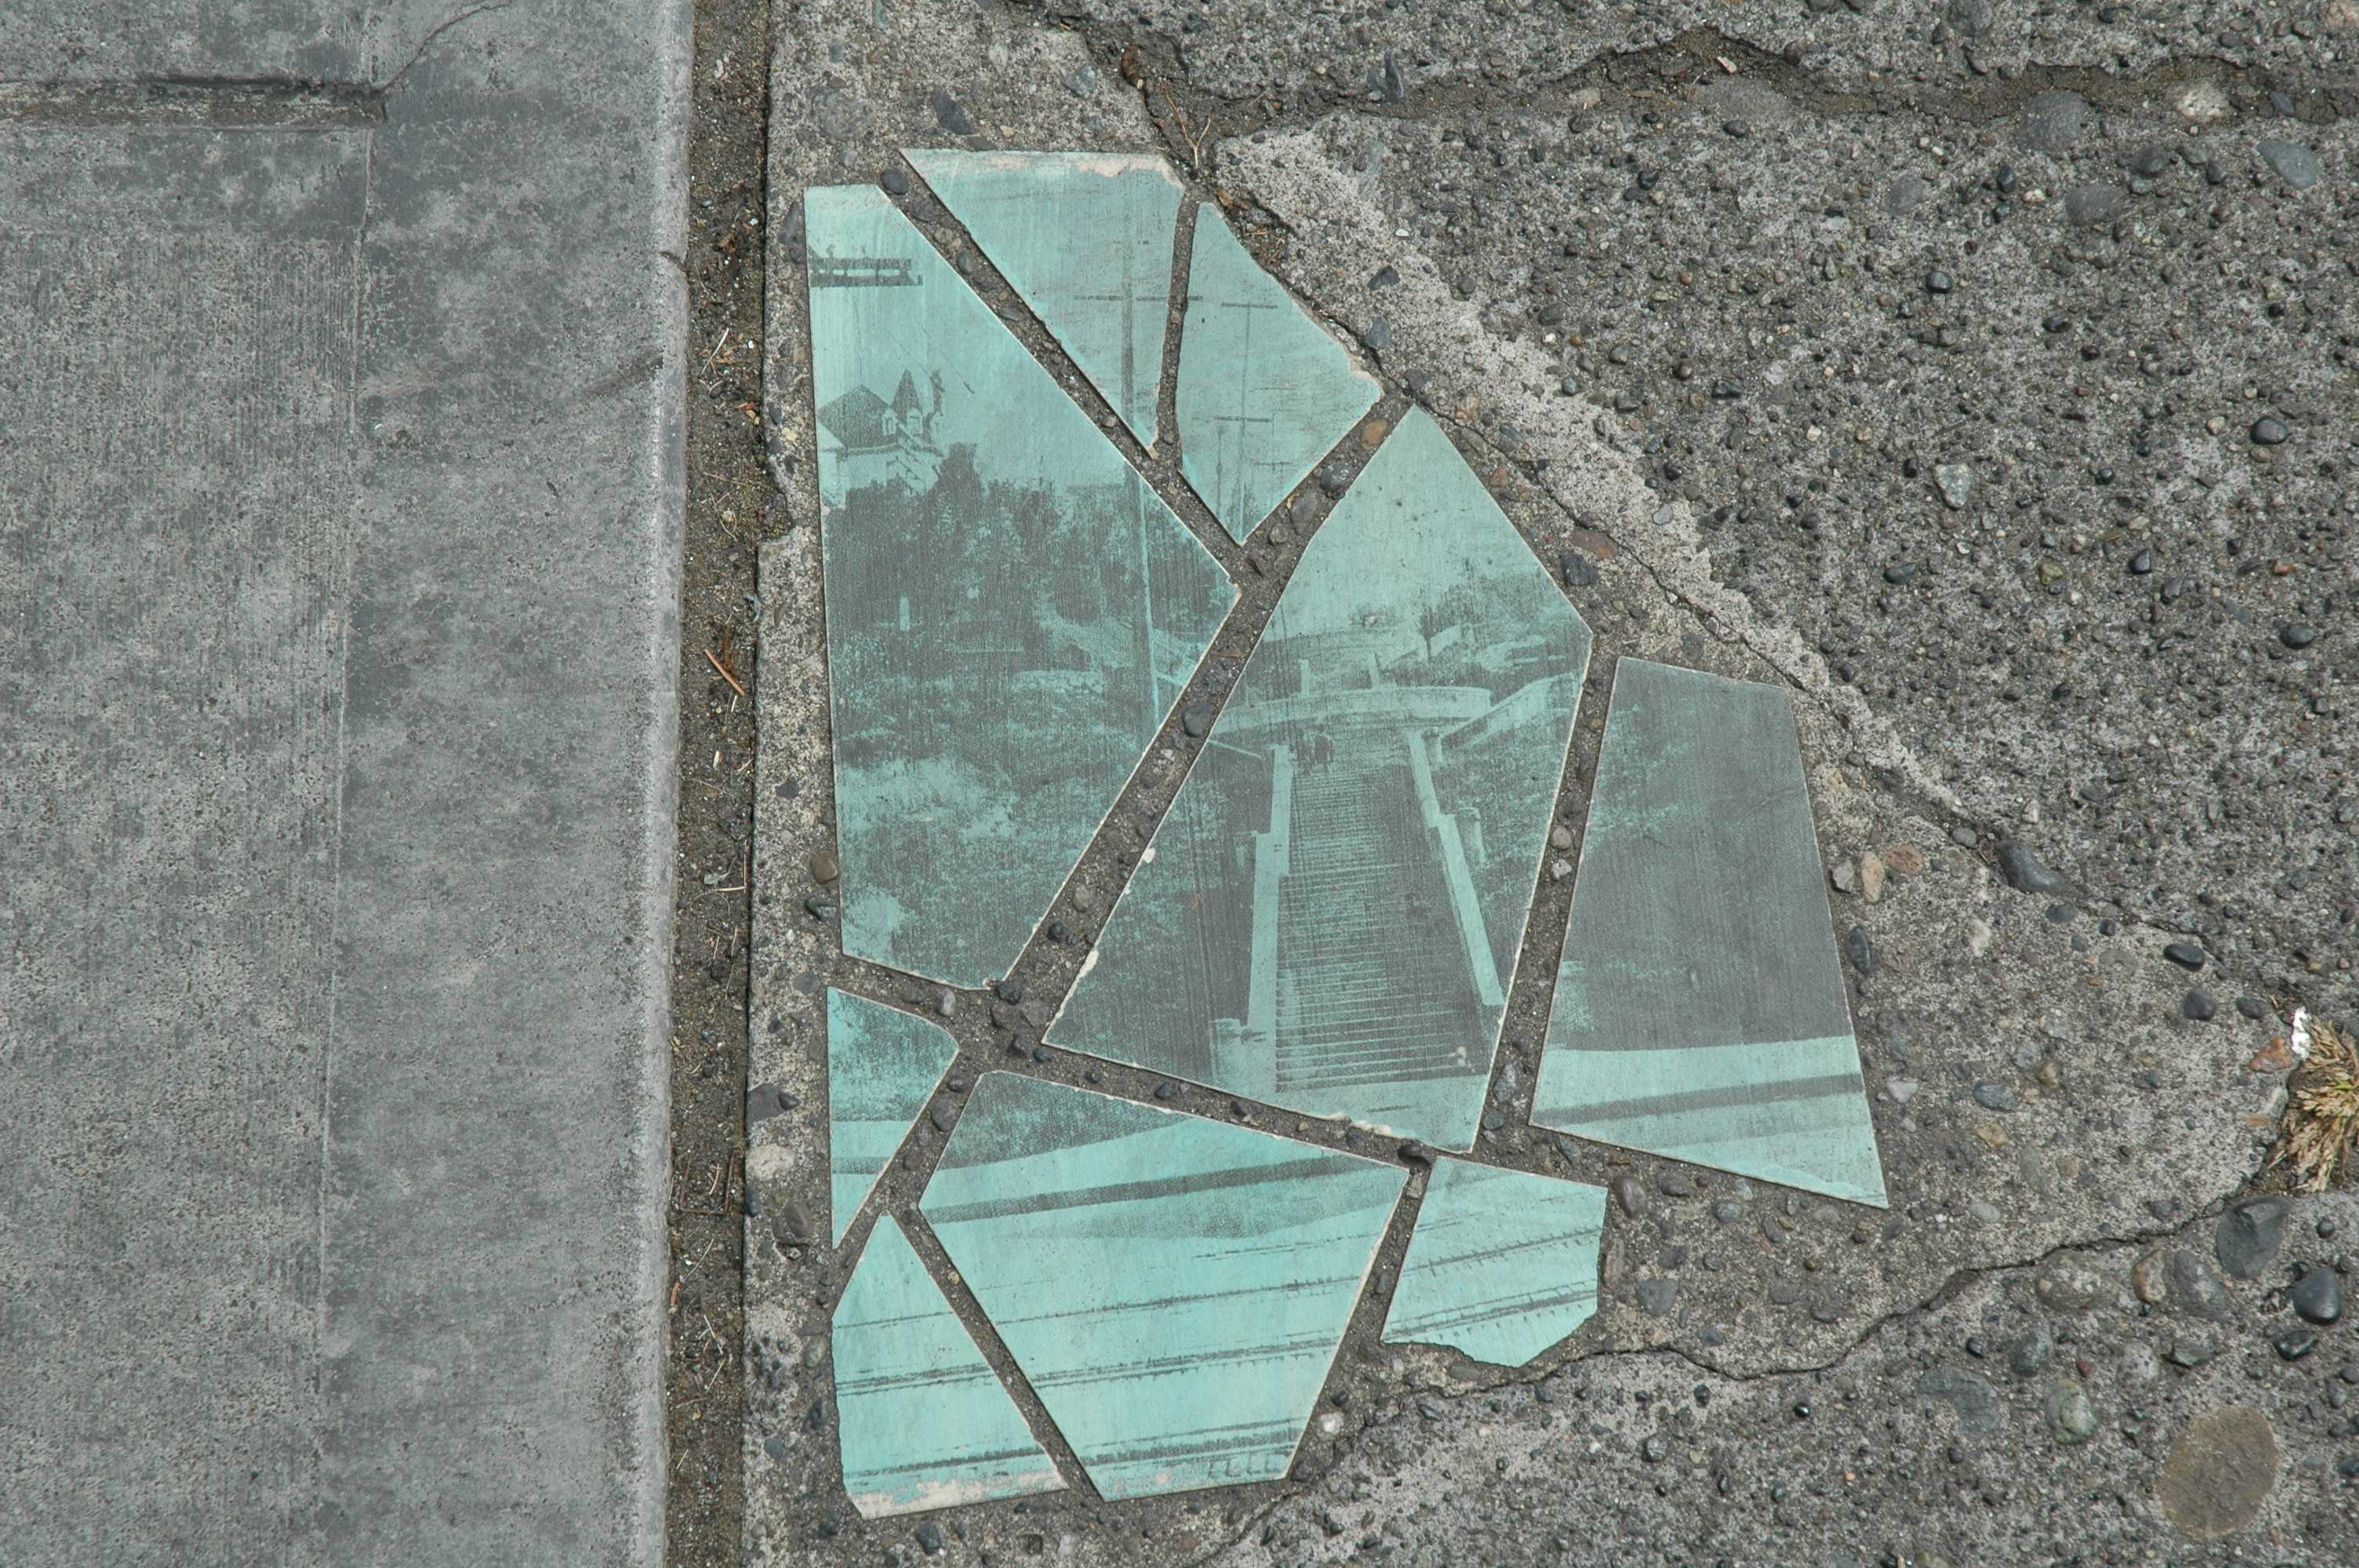 Eclectic sidewalk art and history, it's everywhere in Seattle